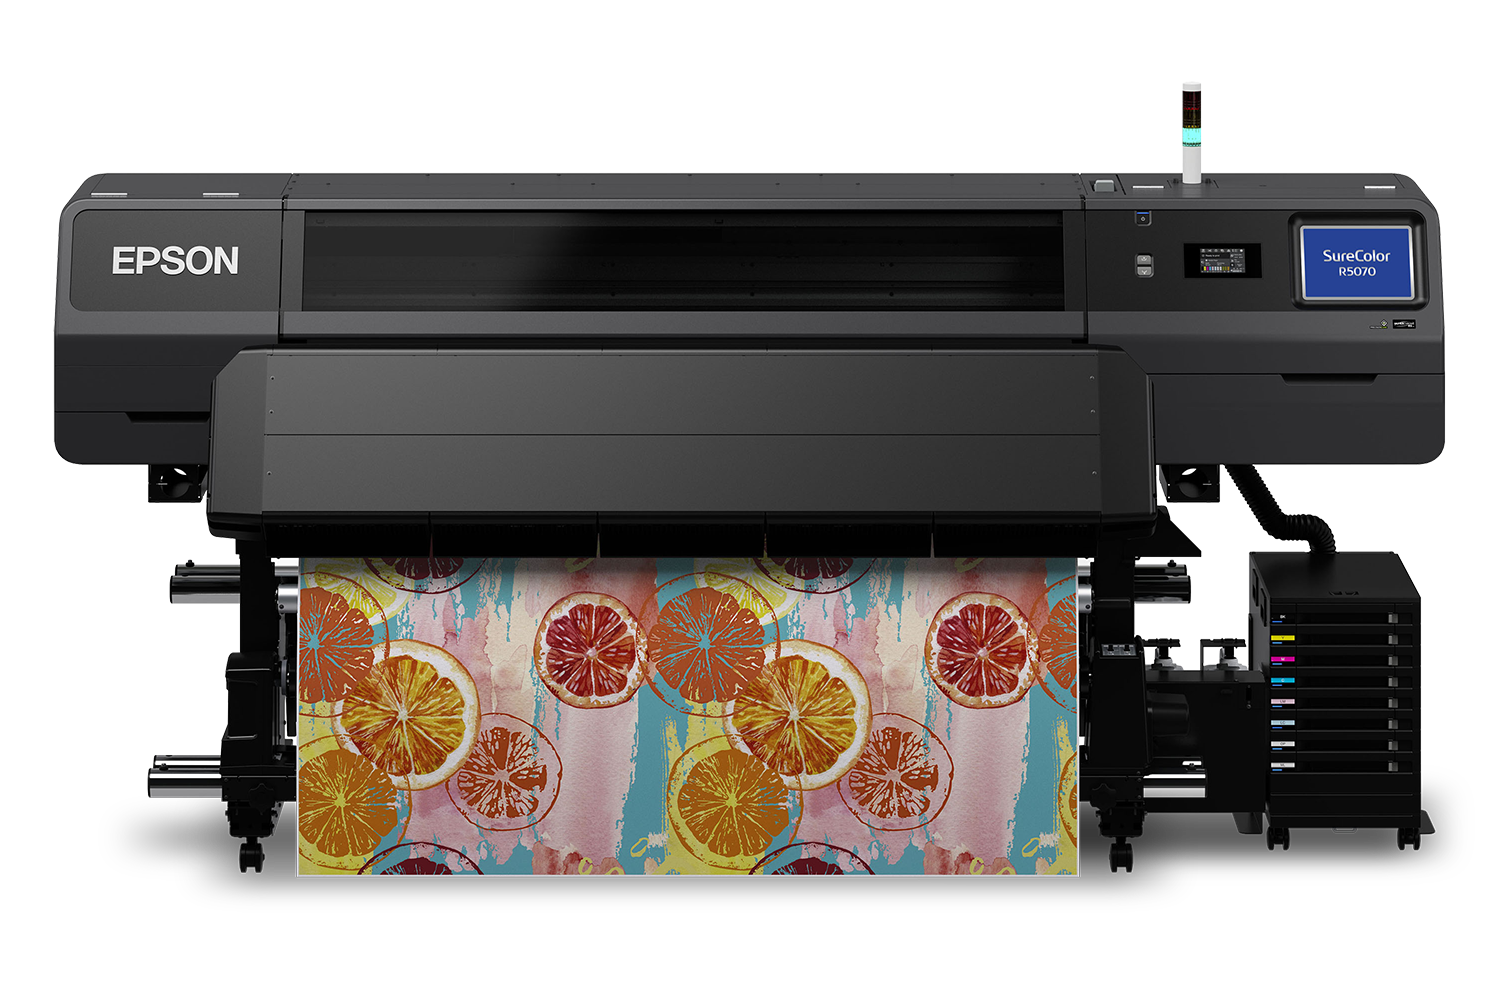 Epson SureColor R5070 Resin Signage Printer Front View